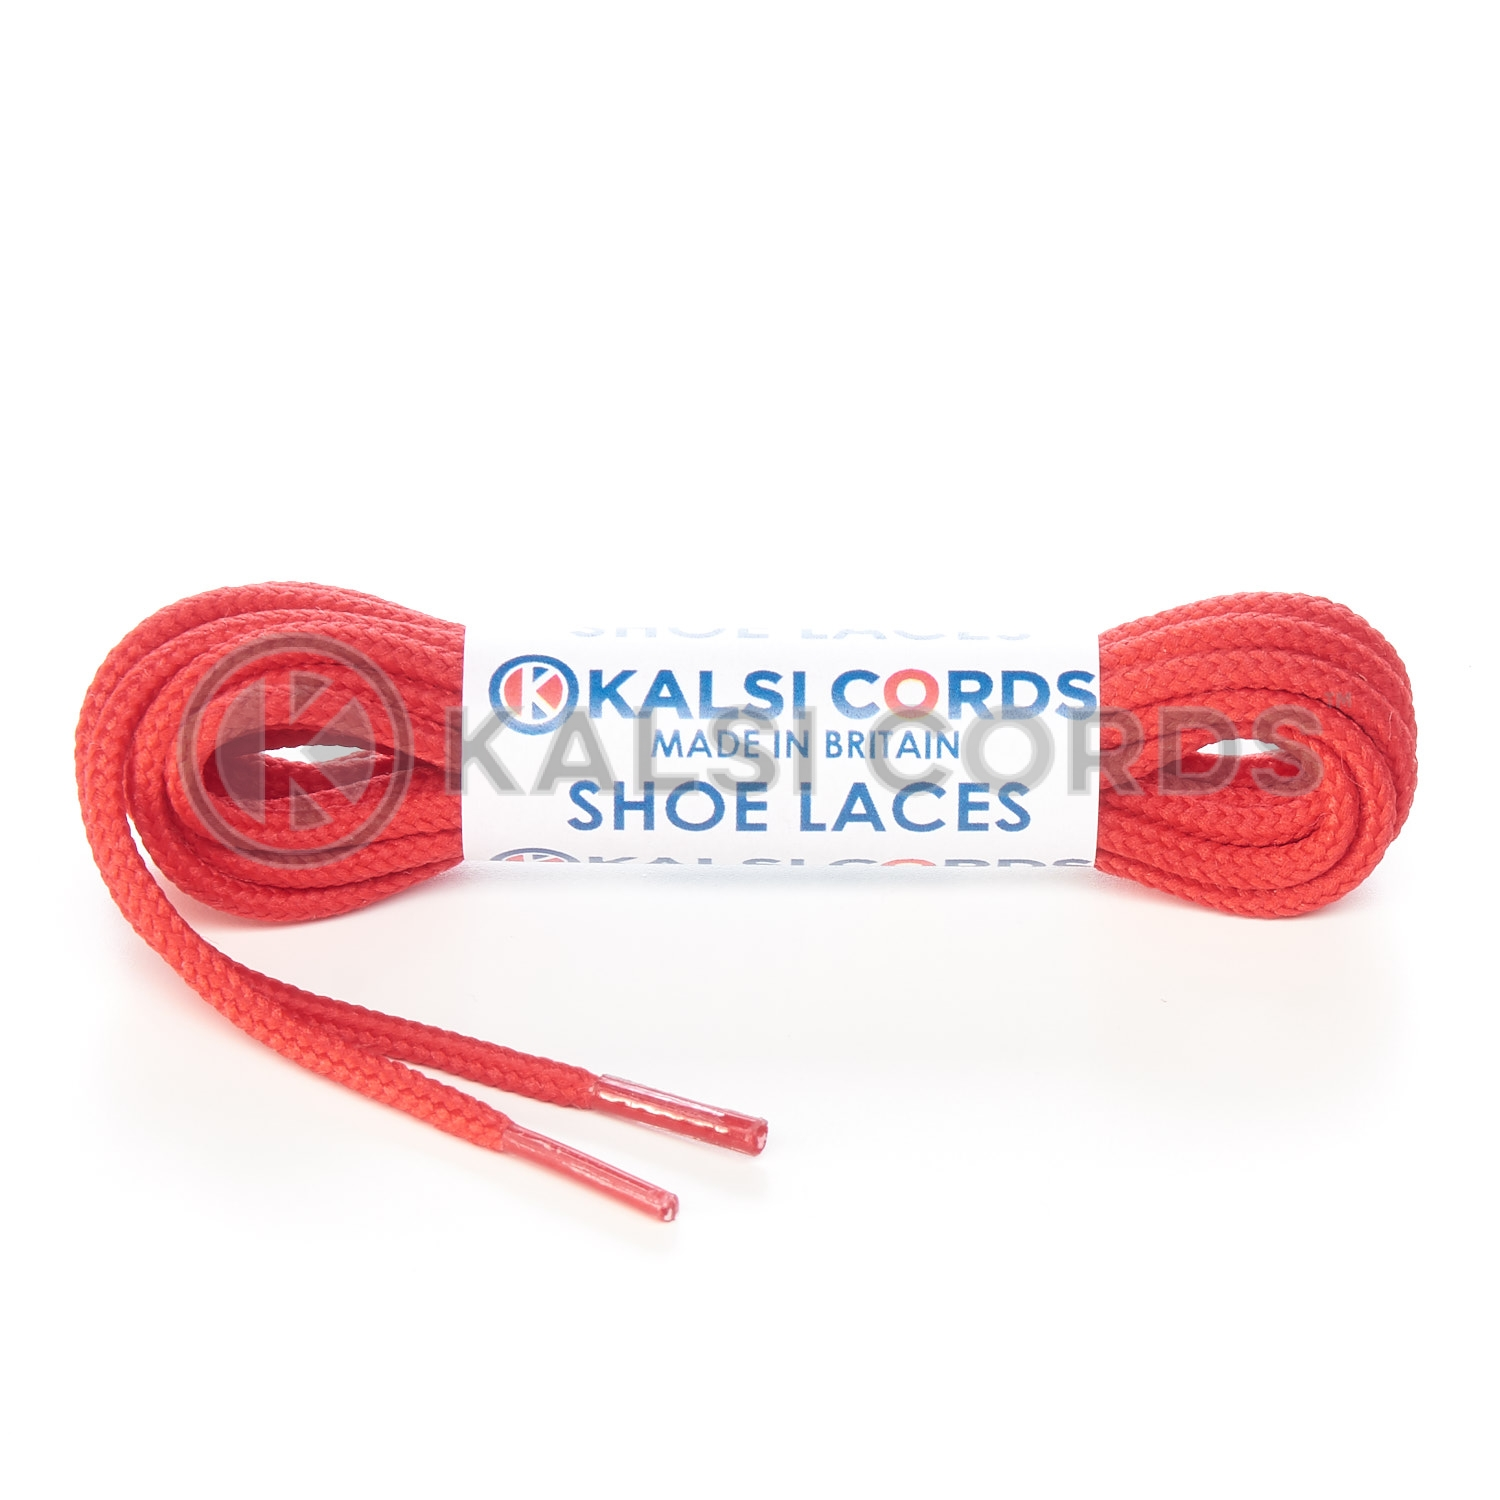 T460 2mm Thin Fine Round Cord Shoe Laces Rose Madder Red PG655 Kids Trainers Adults Brogue Formal Boots Kalsi Cords